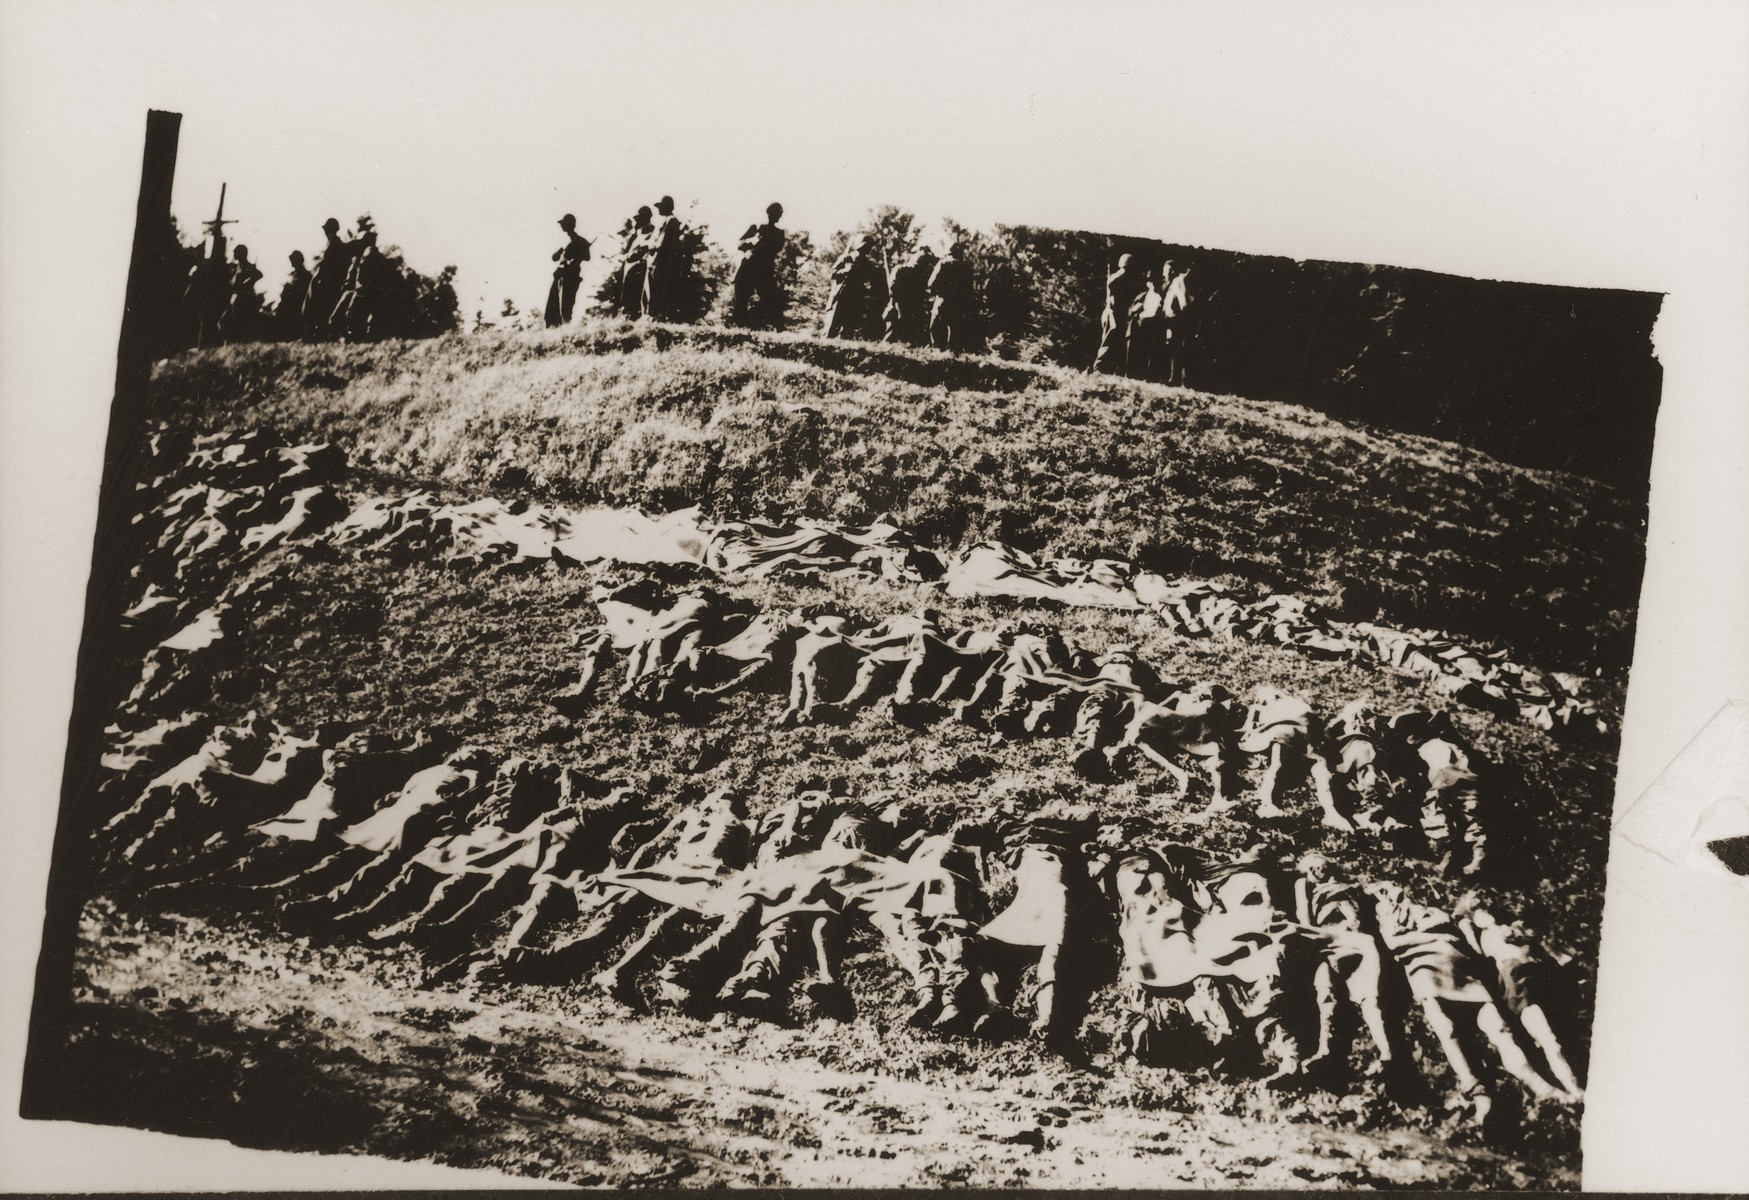 Amercian soldiers stand on the edge of a ravine above the corpses of prisoners exhumed from a mass grave near Nammering.